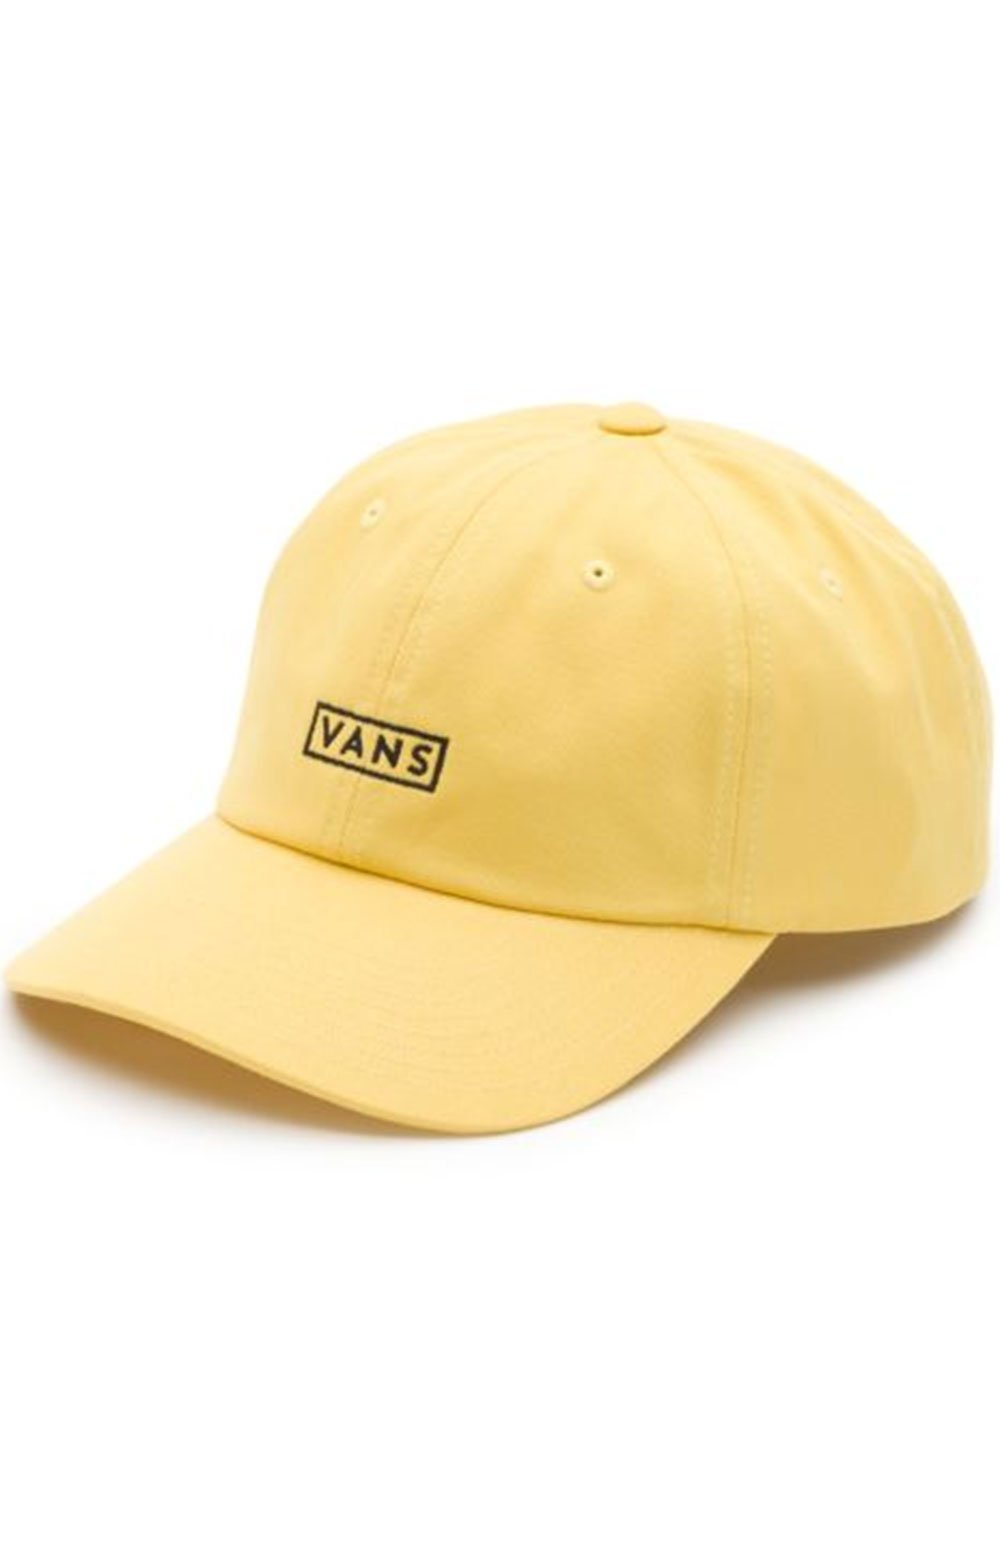 Vans Curved Bill Jockey Hat - Sulphur